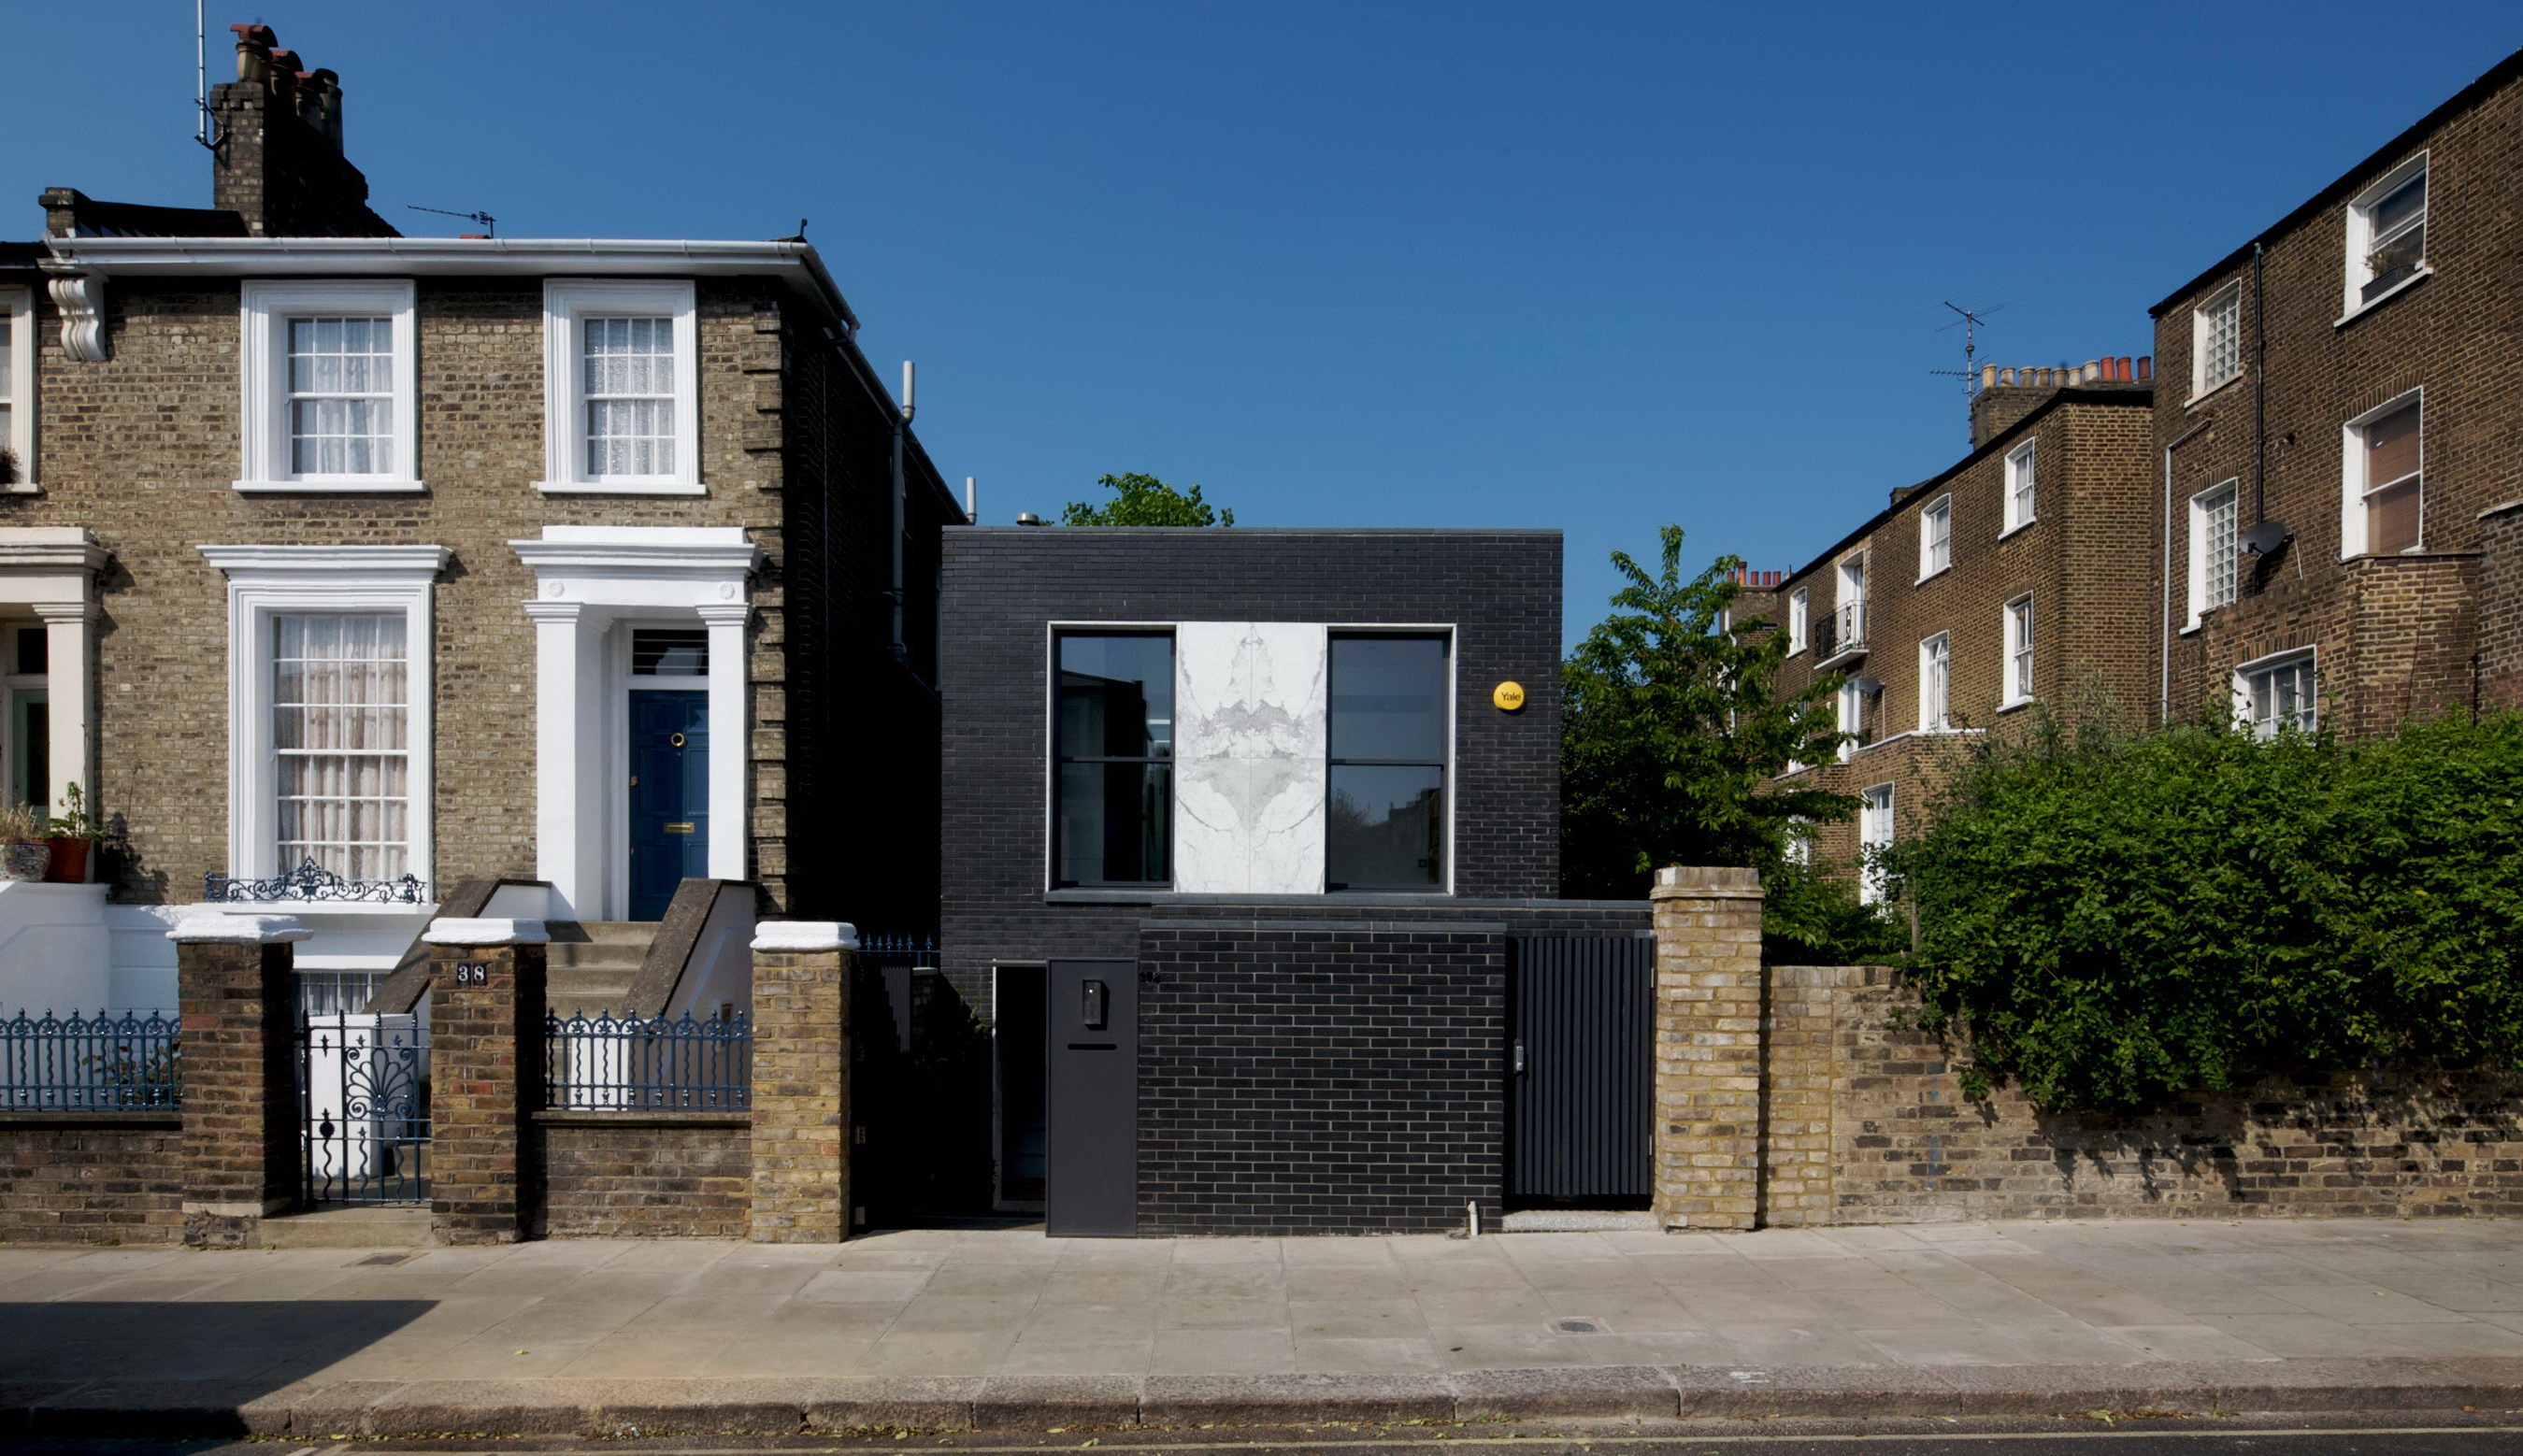 The Shadow House by Liddicoat & Goldhill